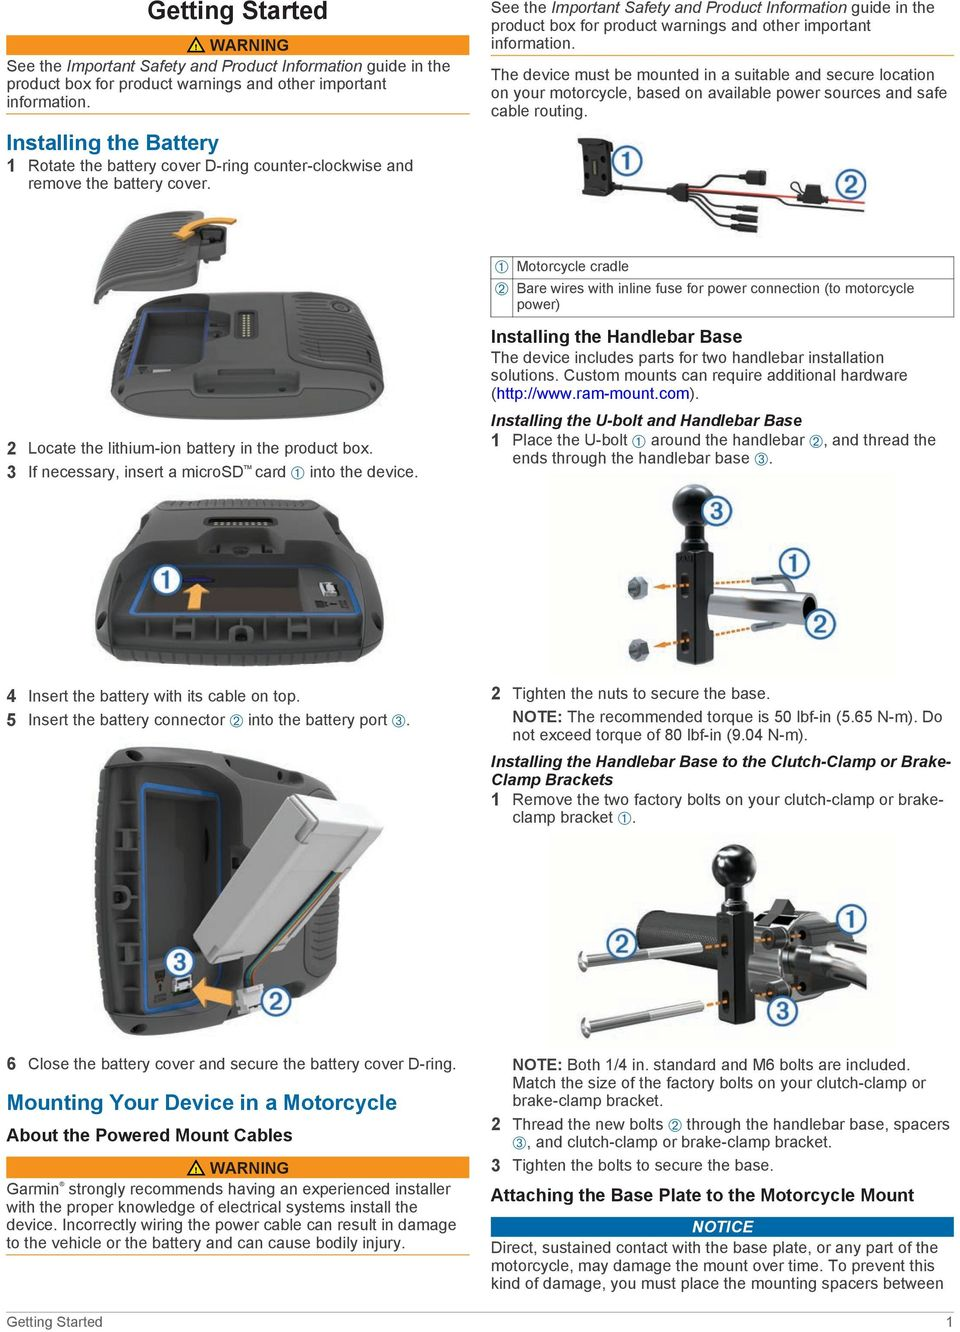 Zmo 590 Owner S Manual Pdf Garmin Zumo Wiring Diagram The Device Must Be Mounted In A Suitable And Secure Location On Your Motorcycle Based